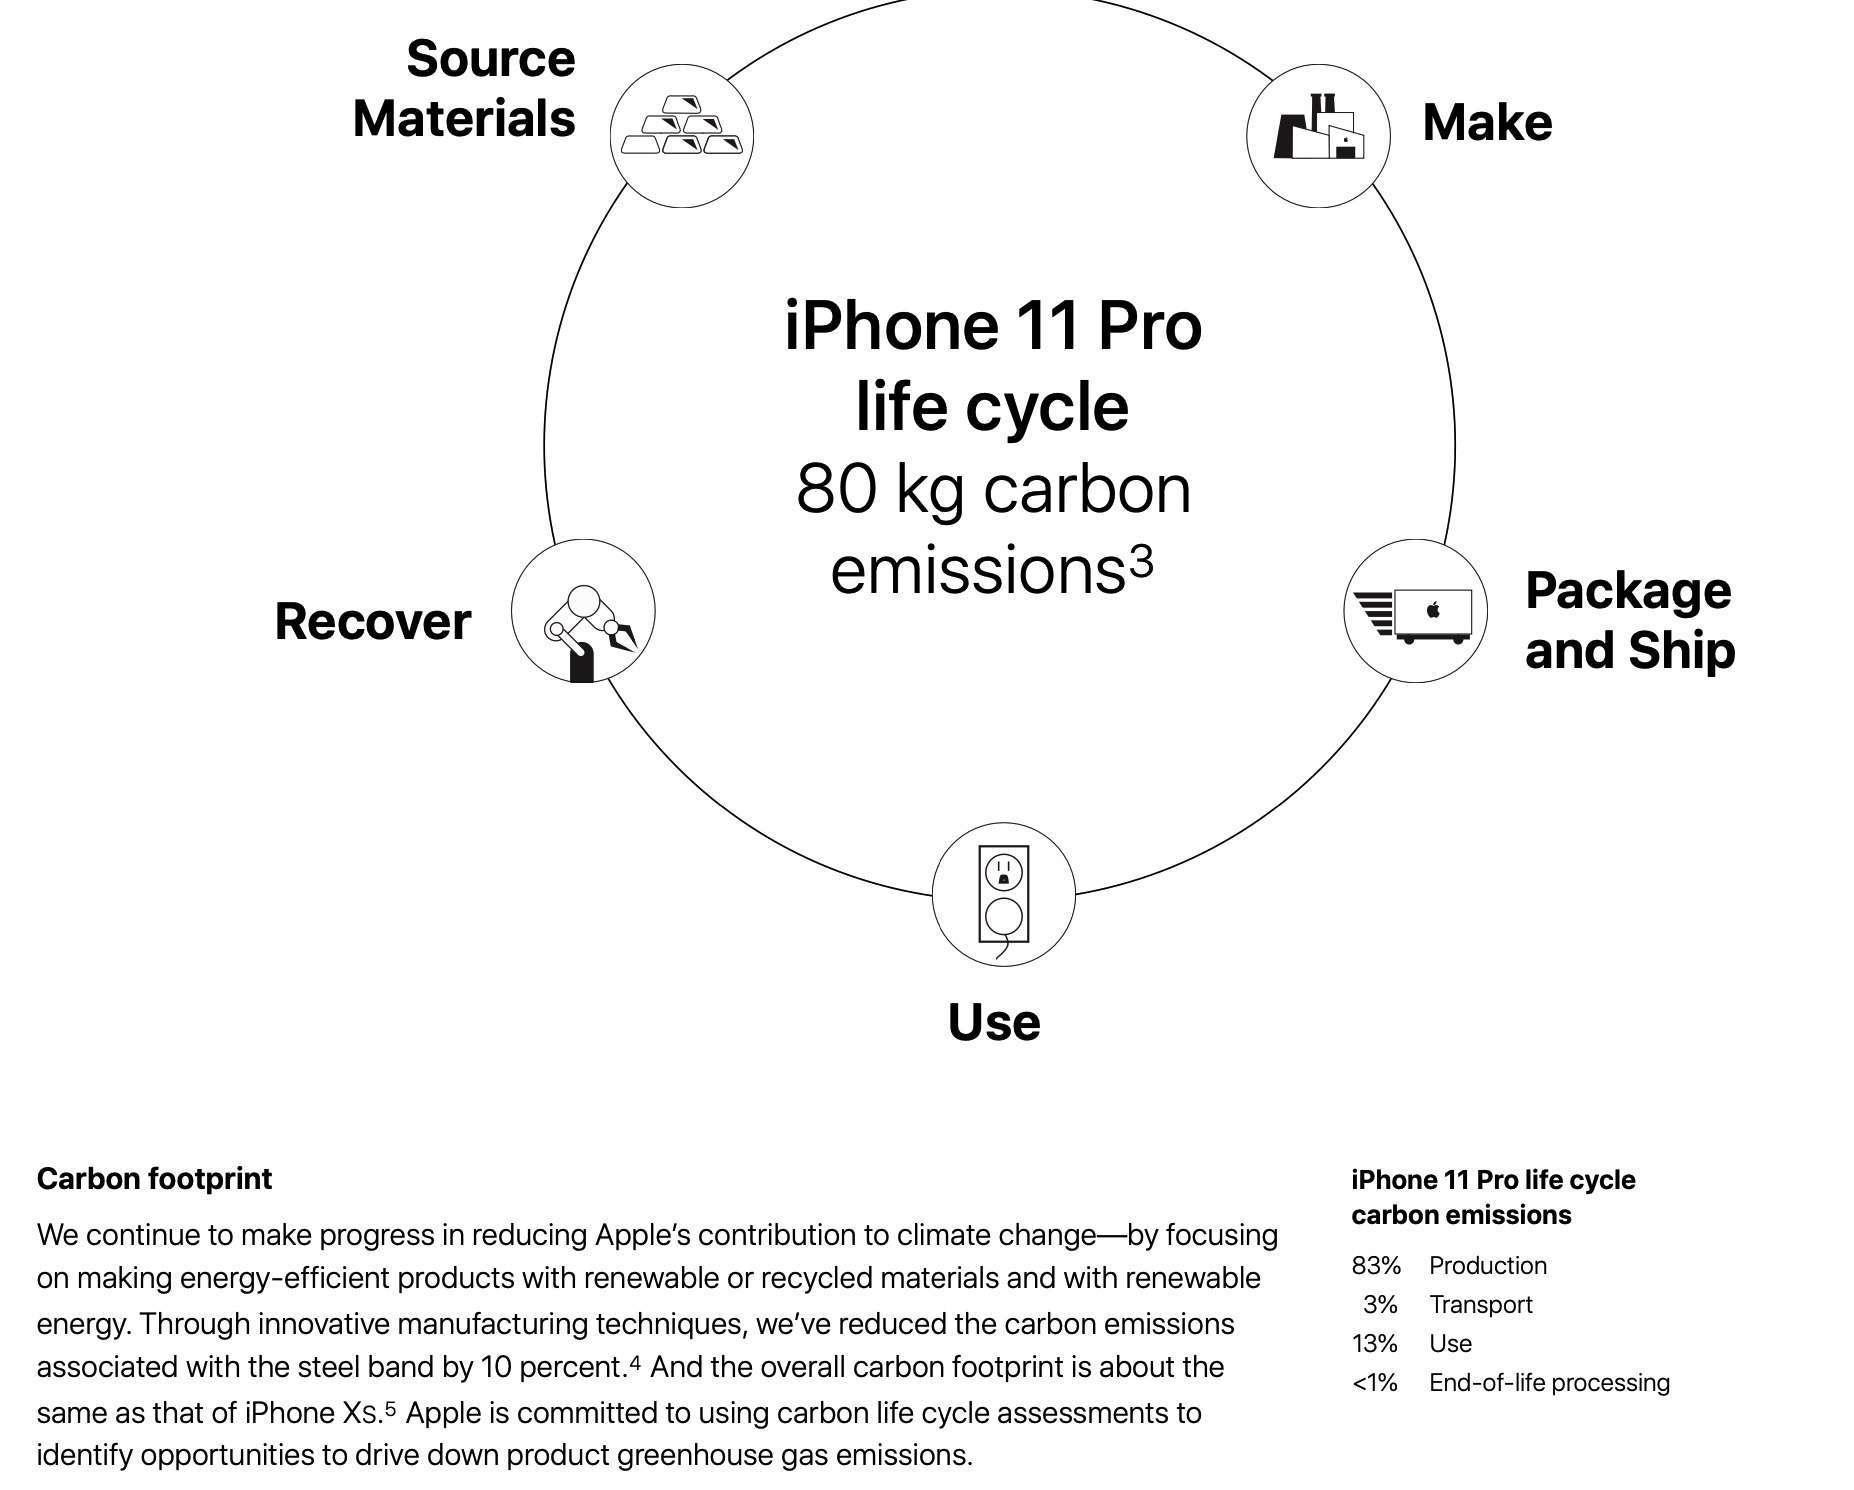 Iphone Lifecycle emissions